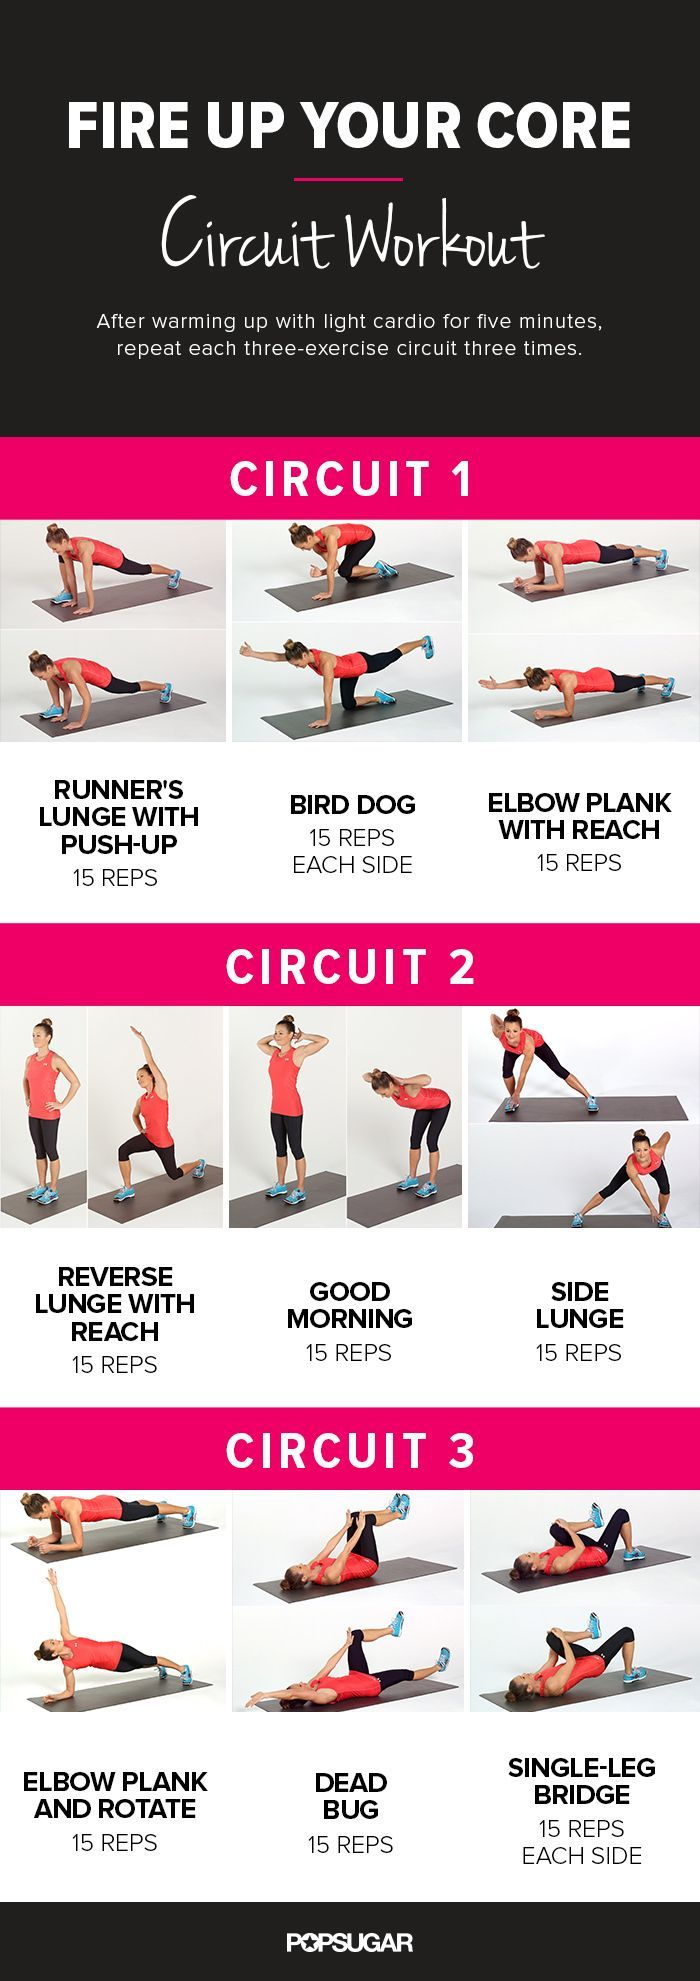 Time to fire up your core for a flat belly!